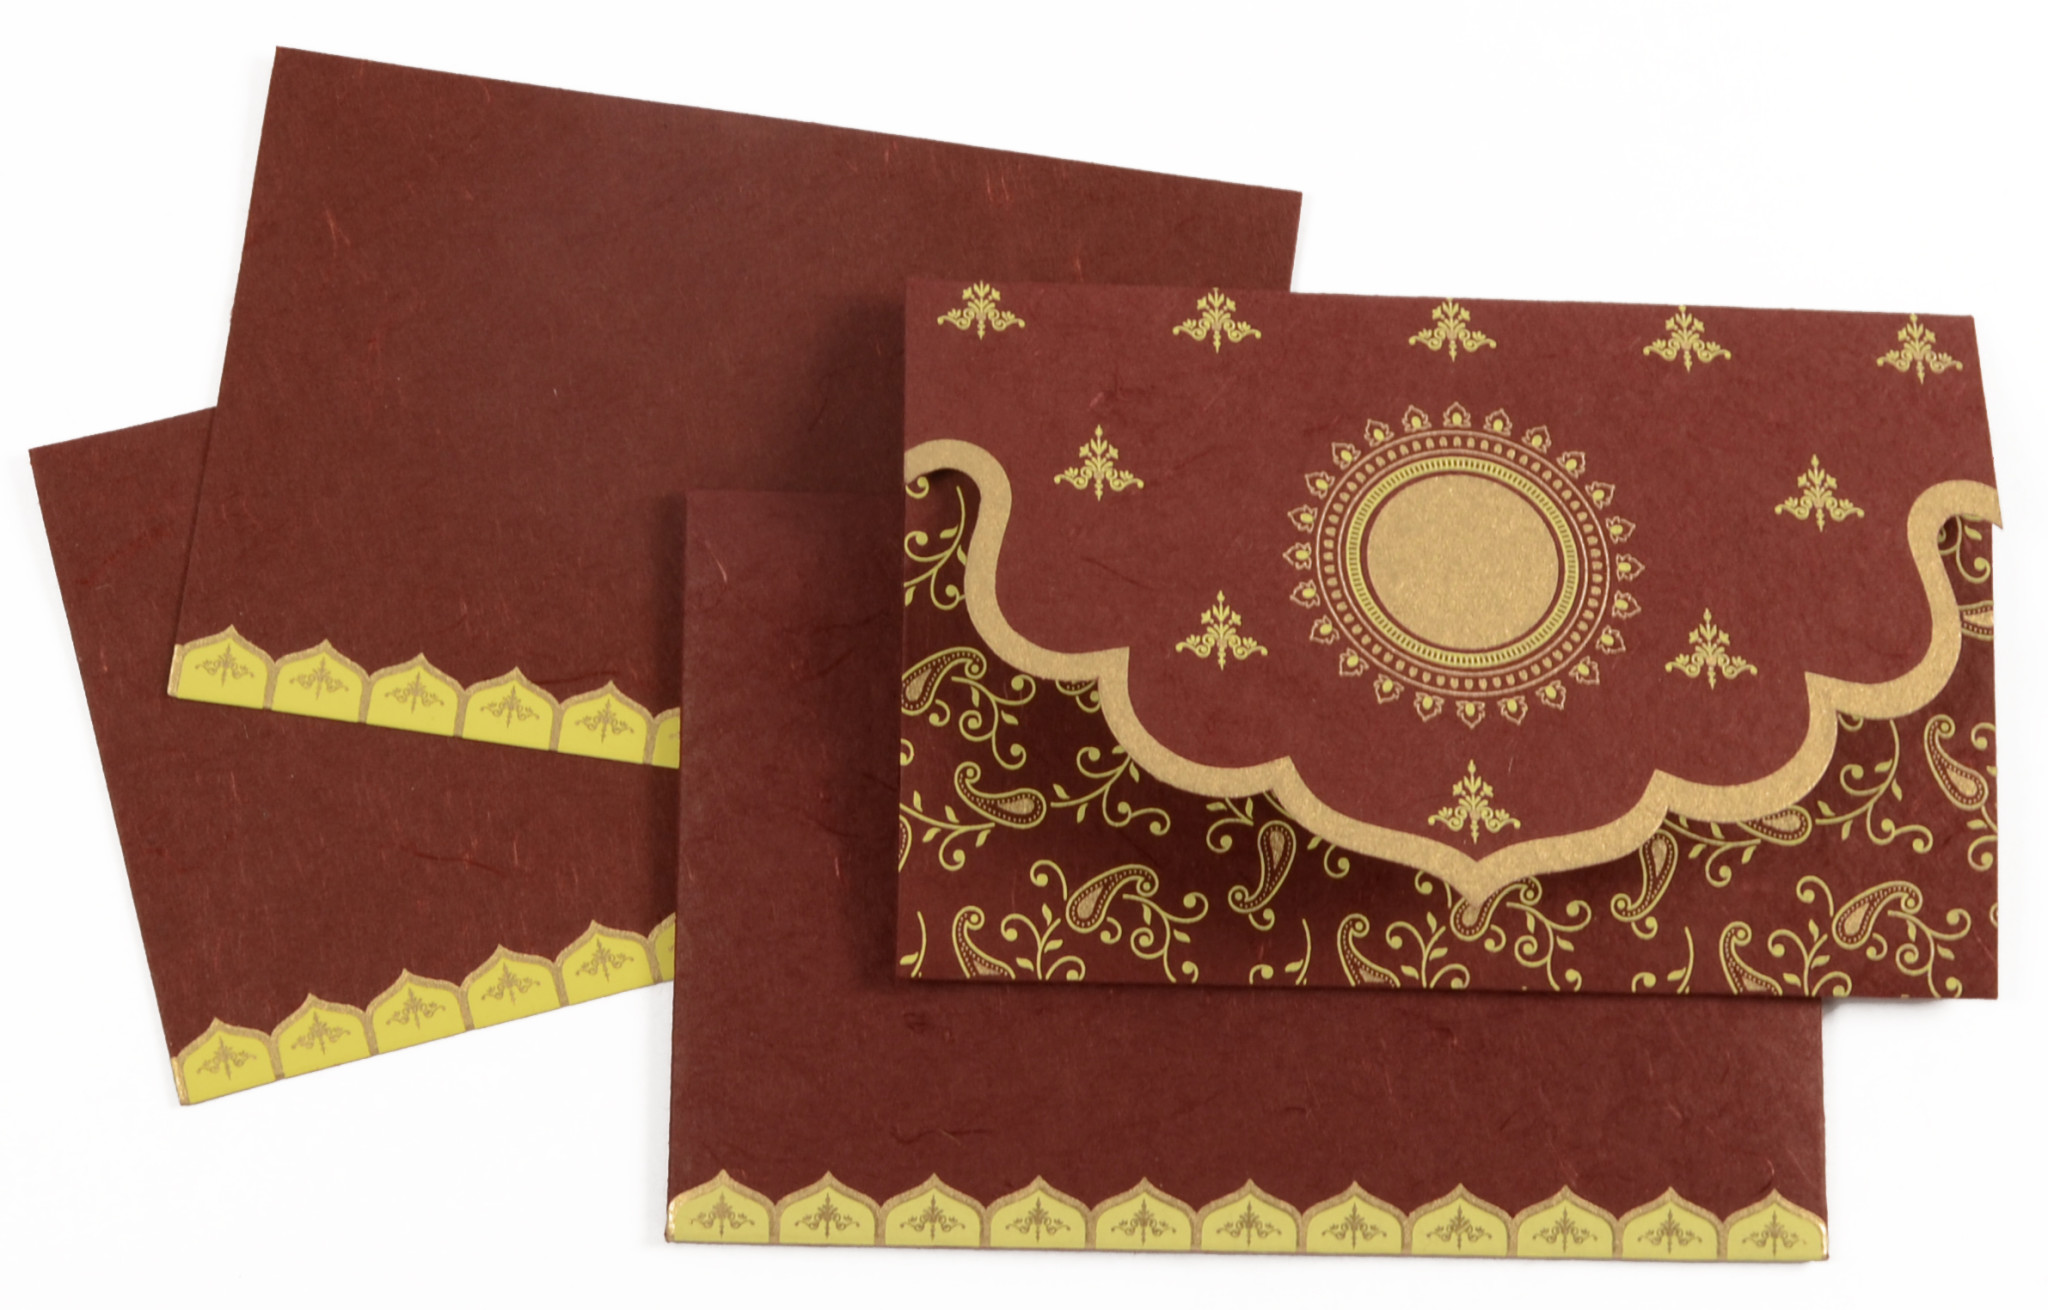 Invitation Cards For Wedding: Pakistani Wedding Invitation Cards Designs